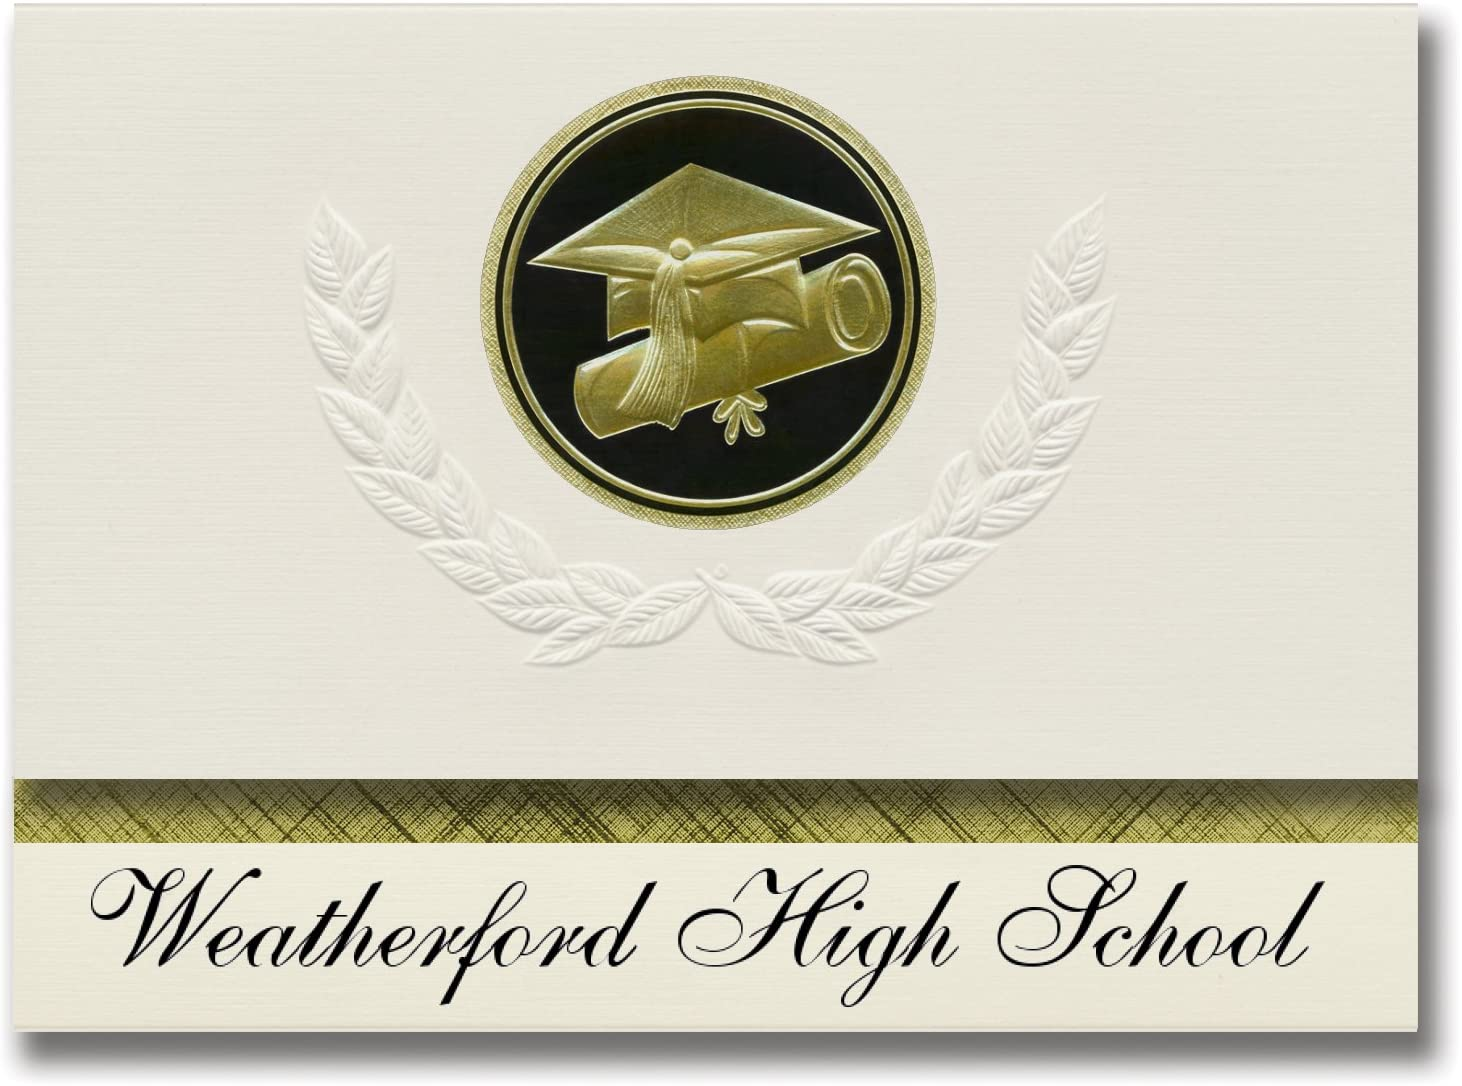 Signature Announcements Weatherford High School (Weatherford, OK) Graduation Announcements, Presidential style, Elite package of 25 Cap & Diploma Seal Black & Gold